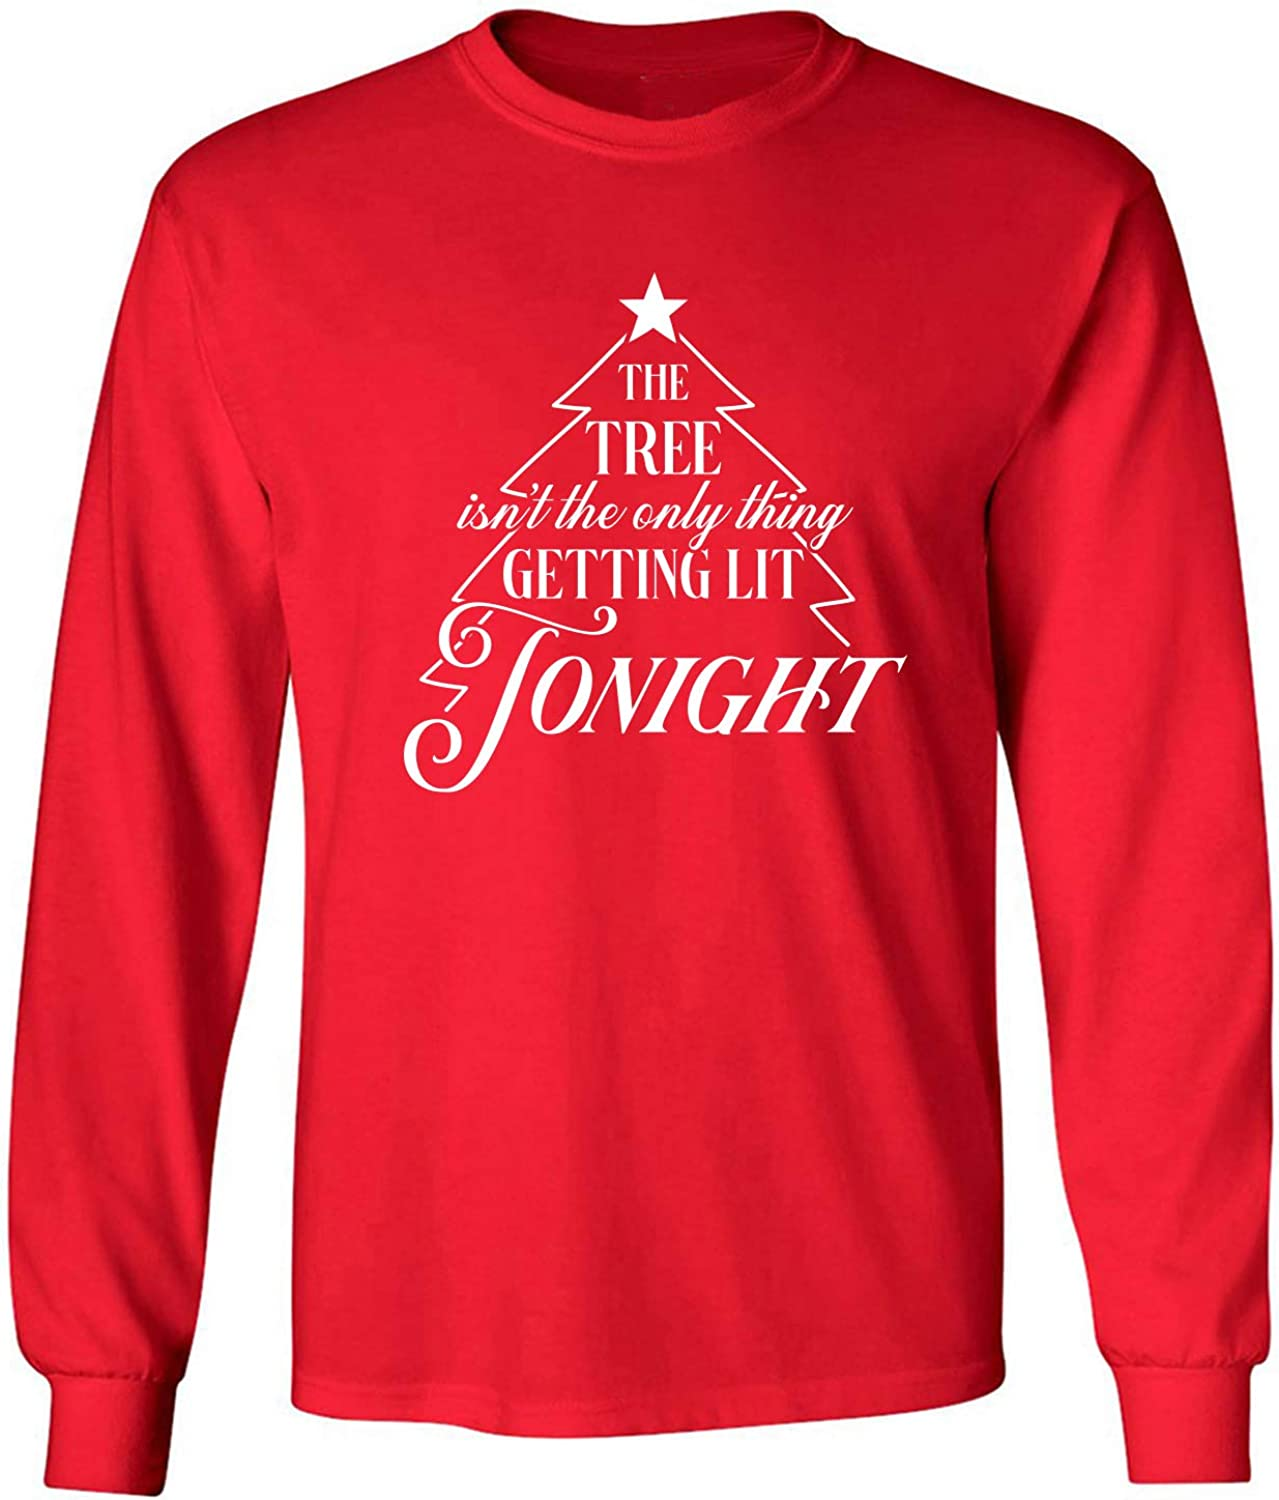 The Tree.Getting Lit Tonight Adult Long Sleeve T-Shirt in Red - XXXX-Large